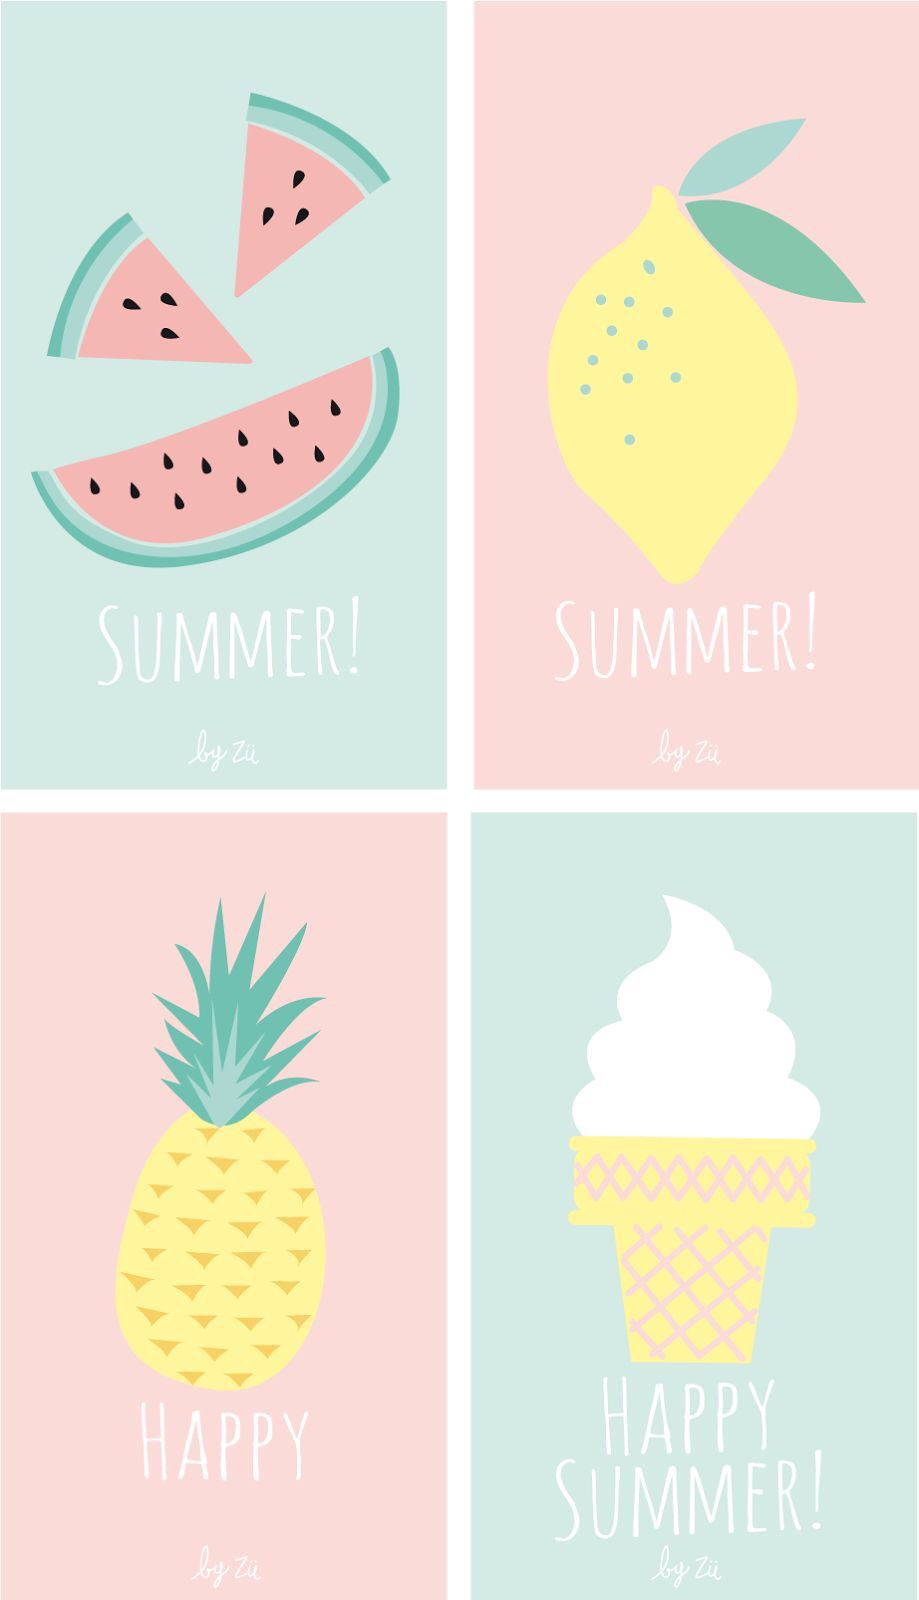 Happy Summer Cute Wallpapers Summer Wallpaper Iphone Wallpaper